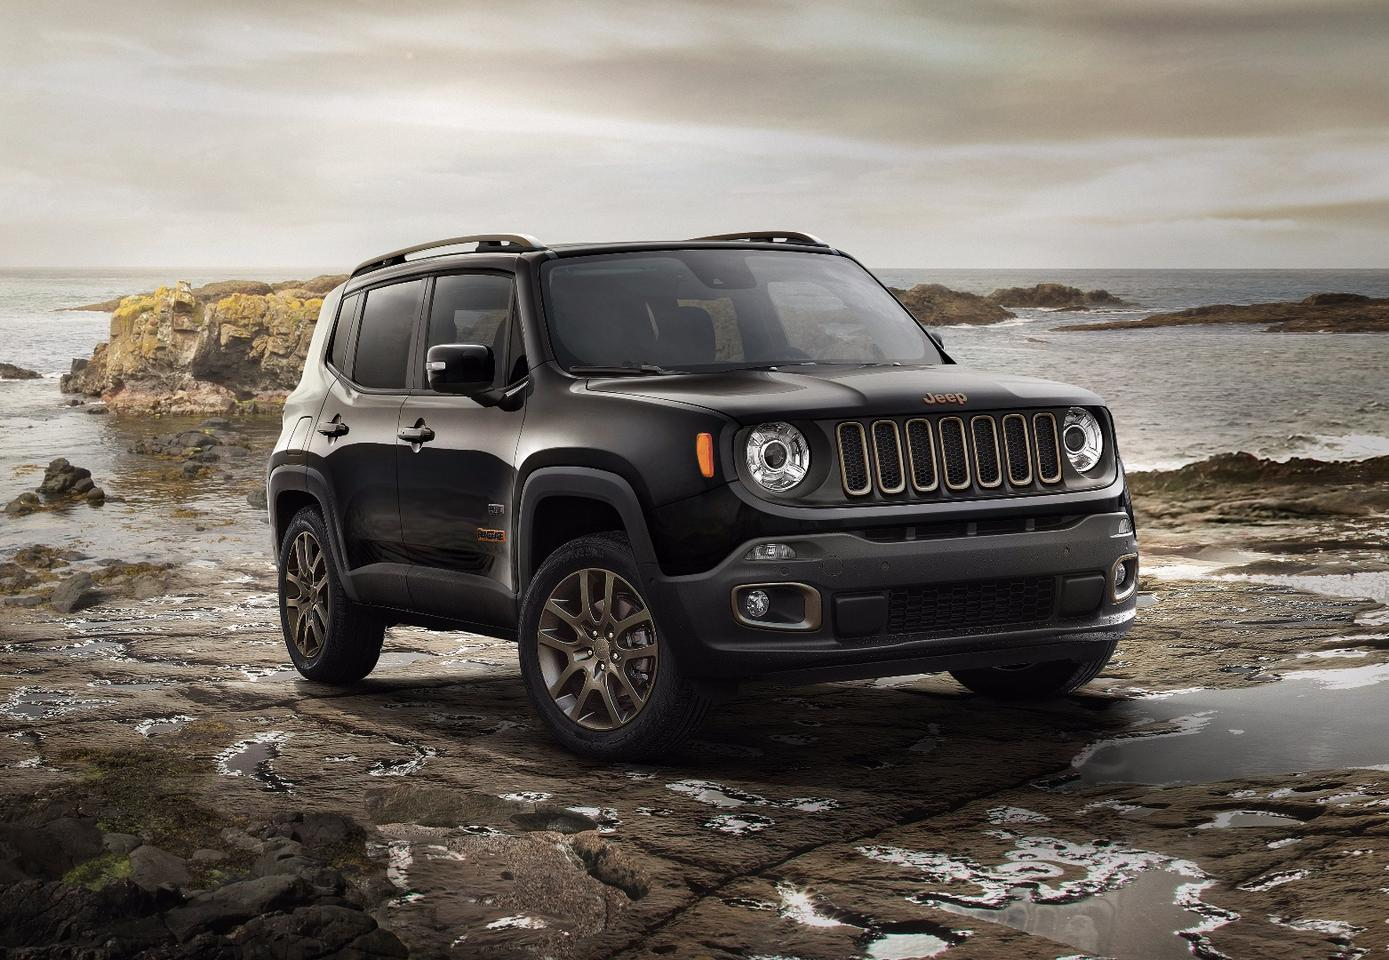 75th anniversary edition of the Jeep Renegade